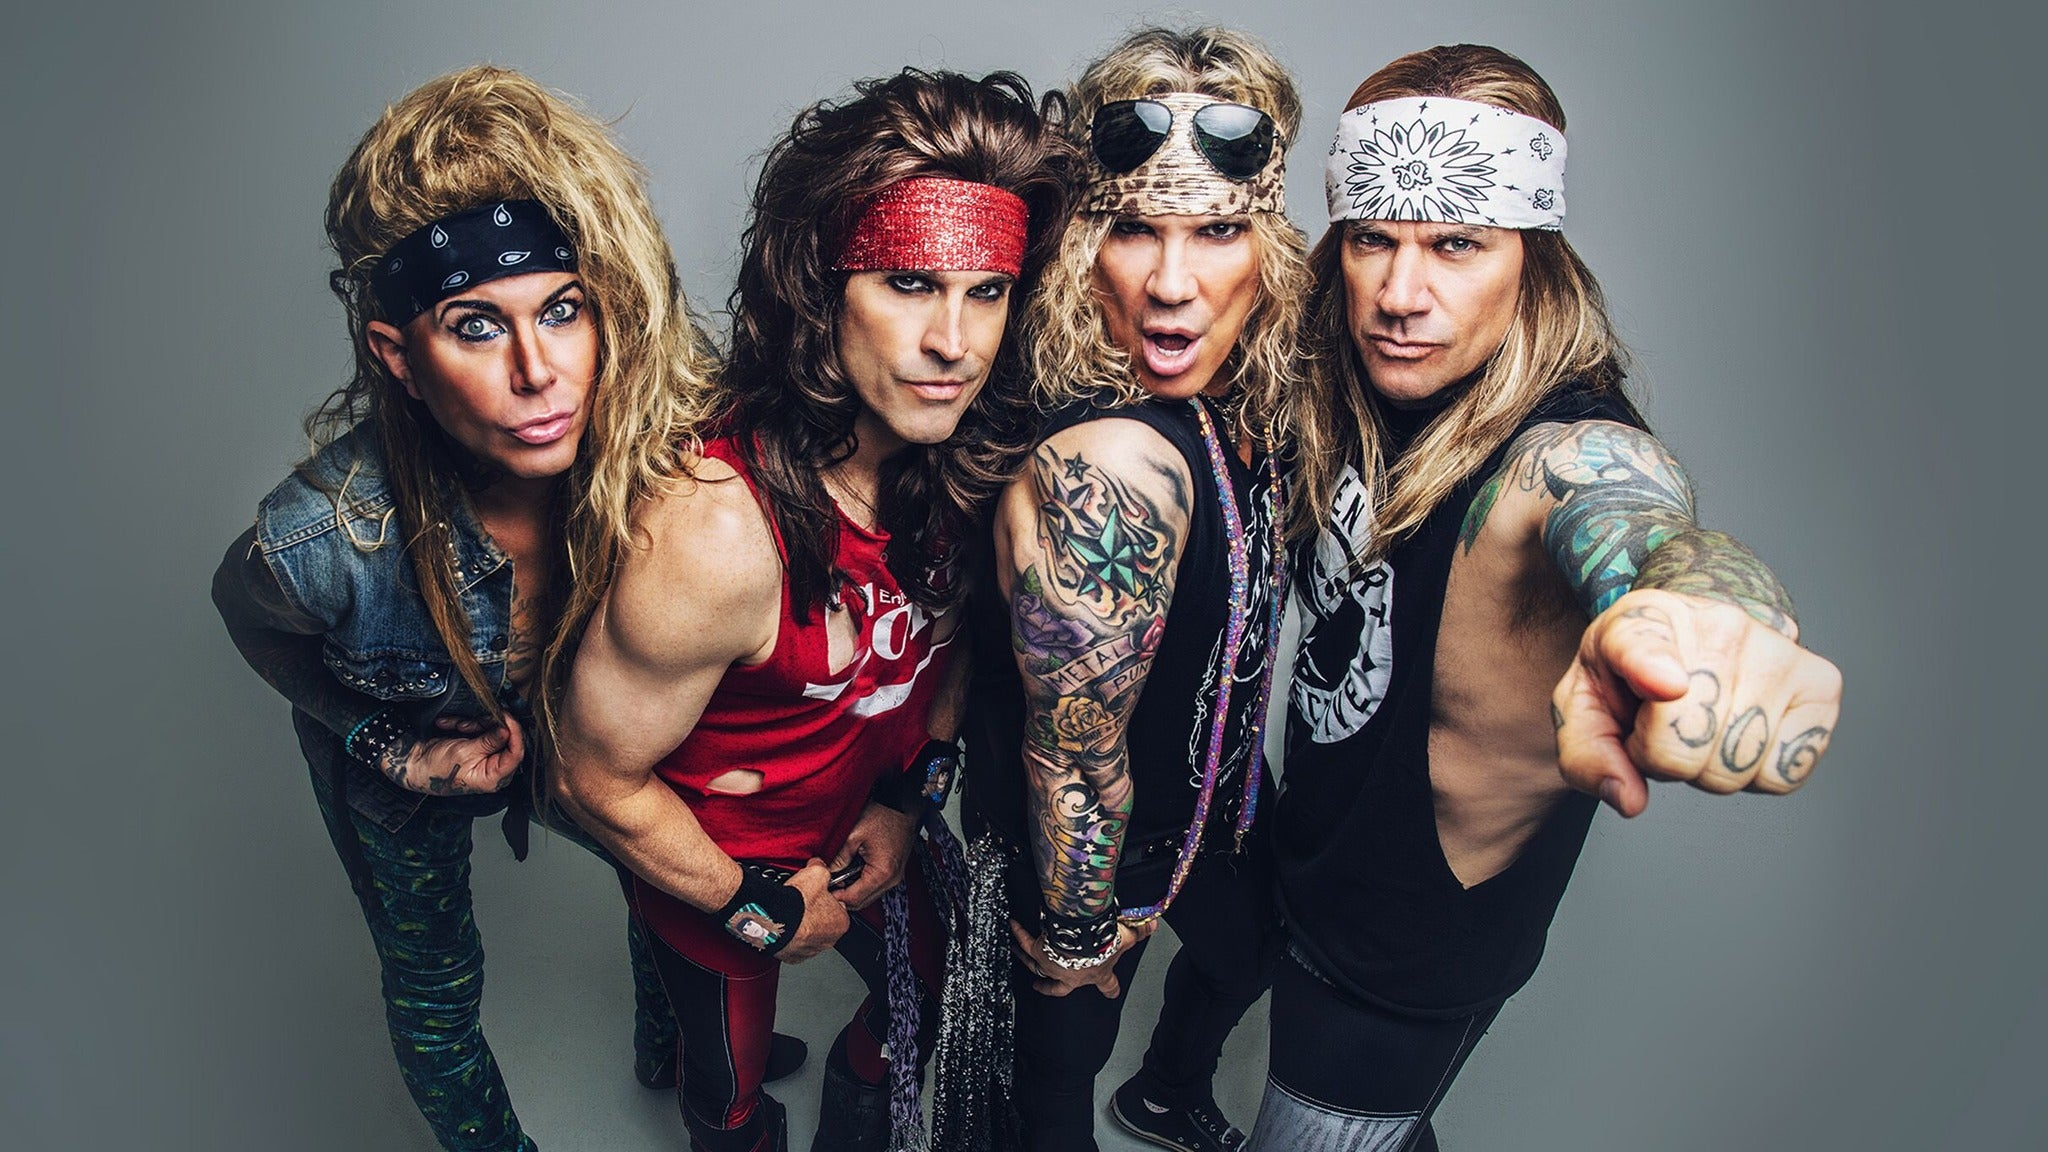 SORRY, THIS EVENT IS NO LONGER ACTIVE<br>Steel Panther - Heavy Metal Rules Tour at Uptown Theater - Kansas City, MO 64111